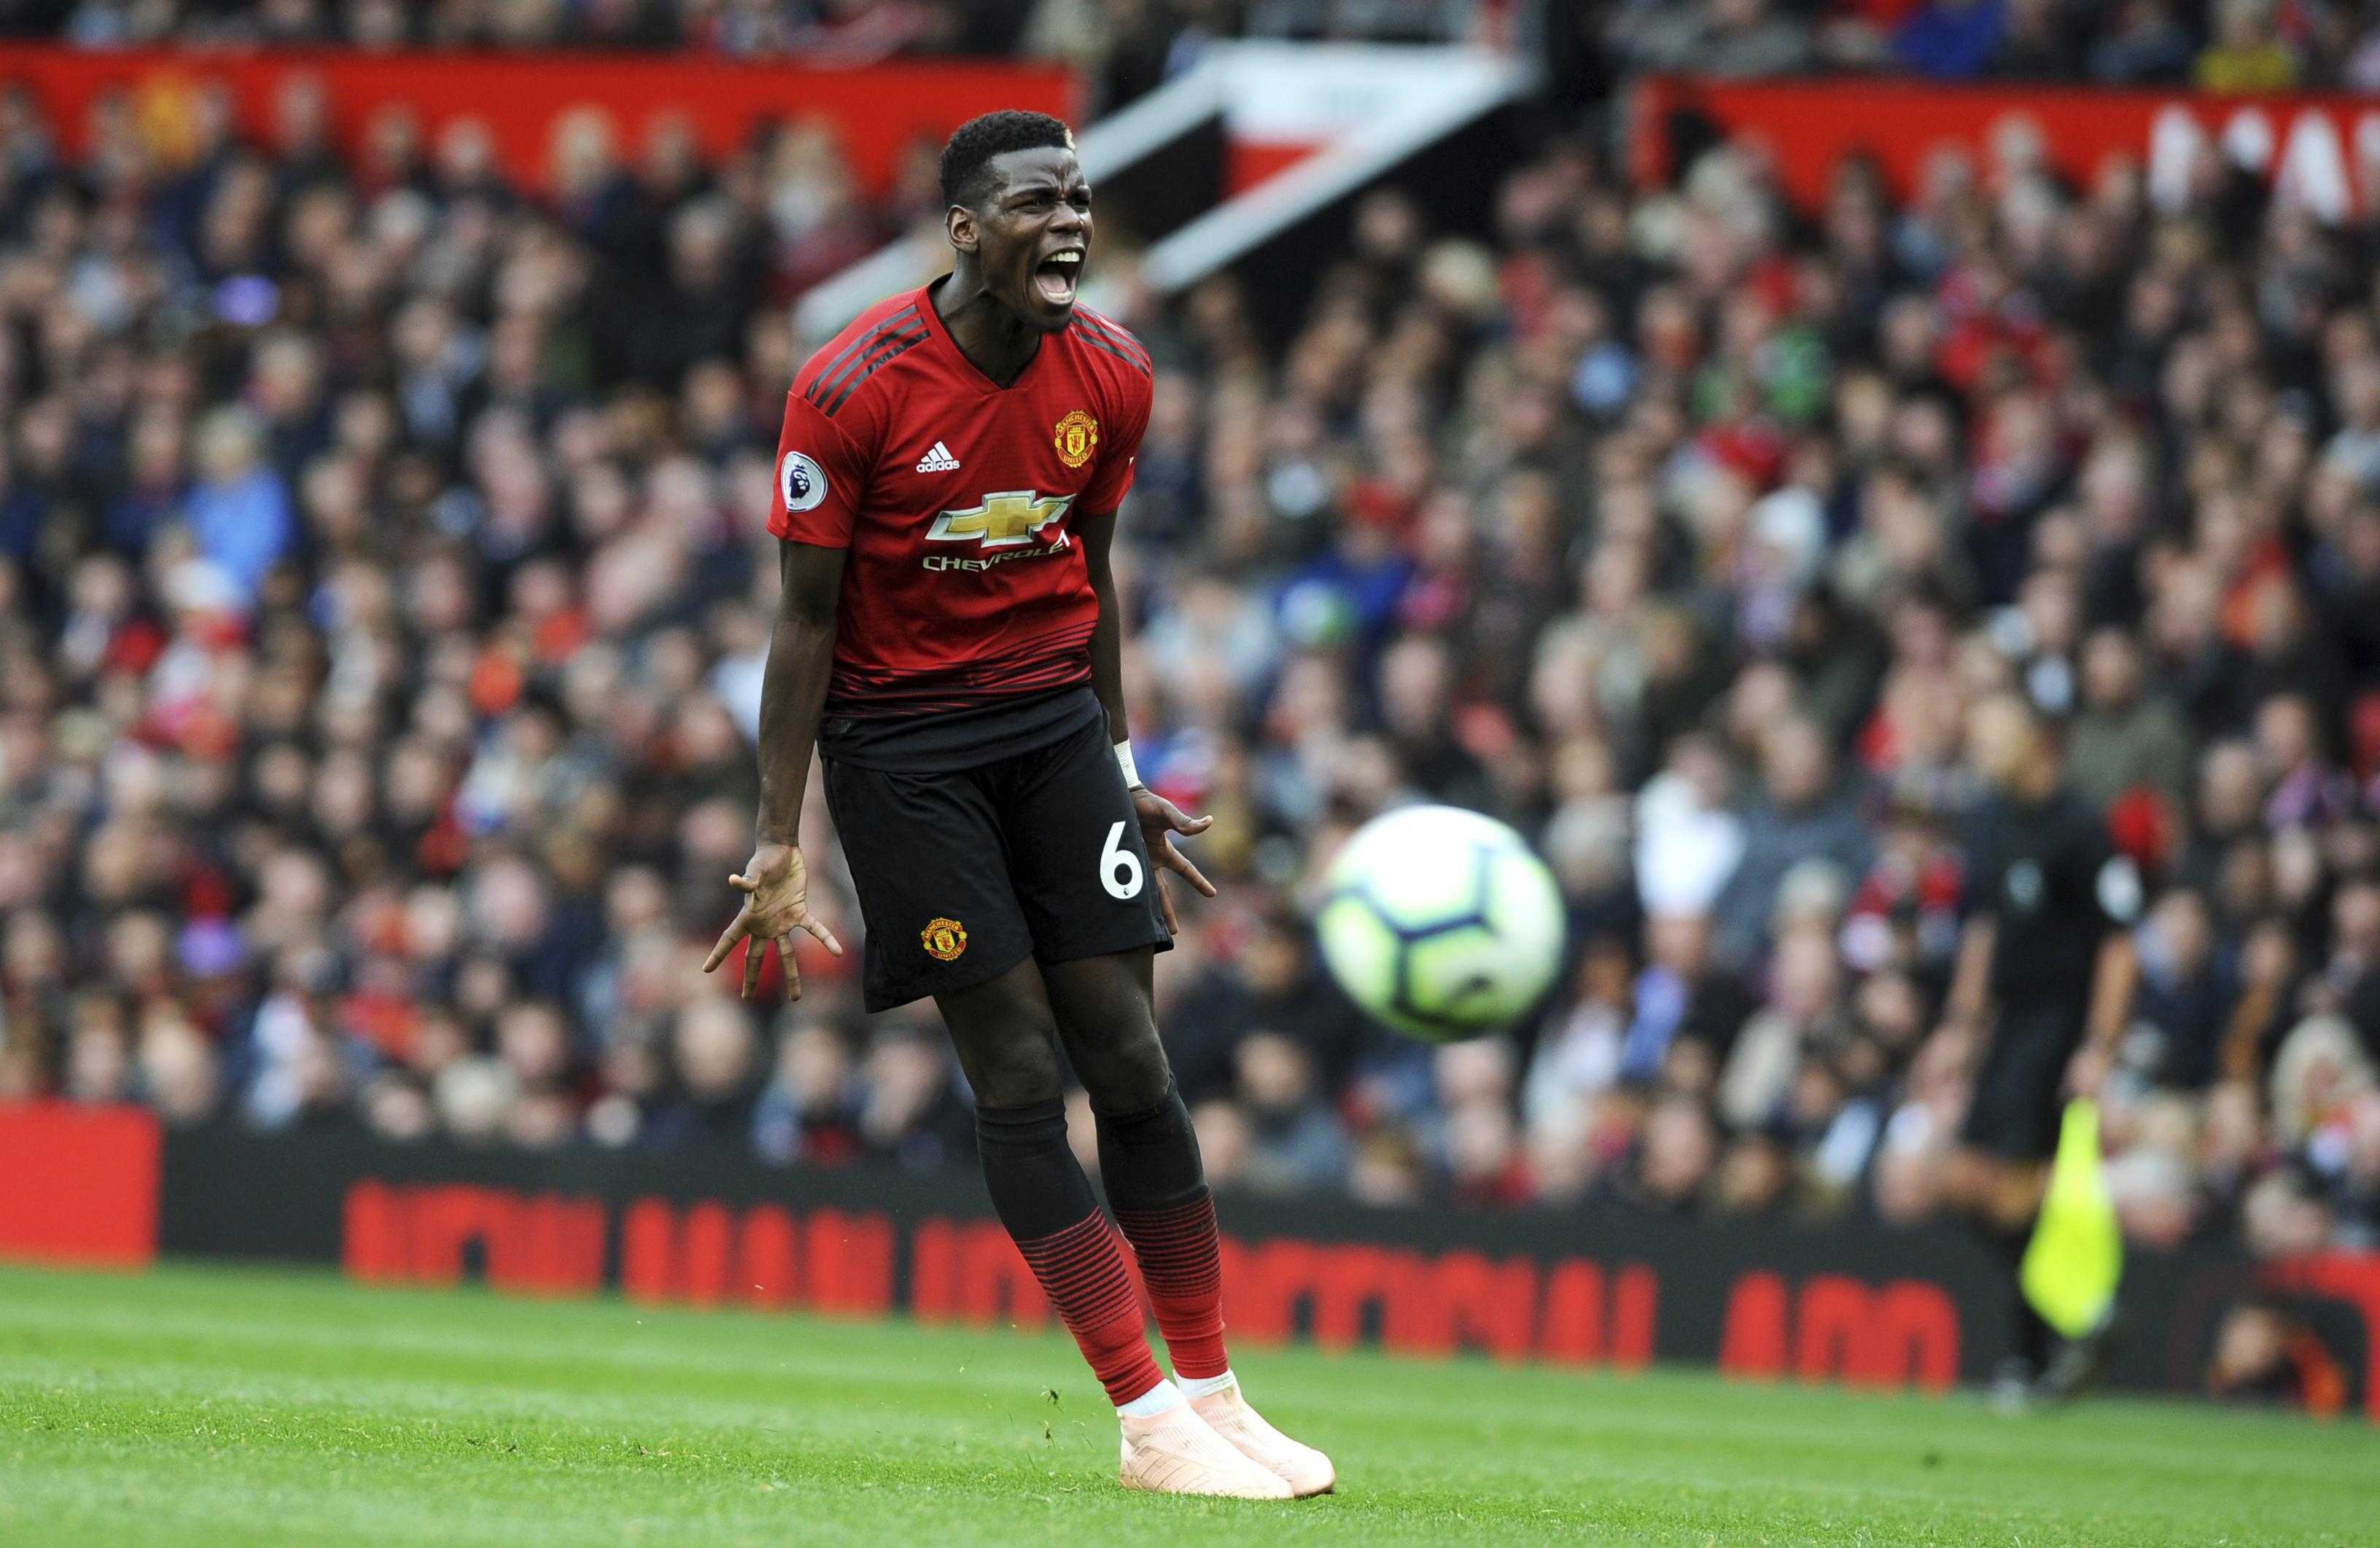 Paul Pogba continues to cut a frustrated figure in midfield